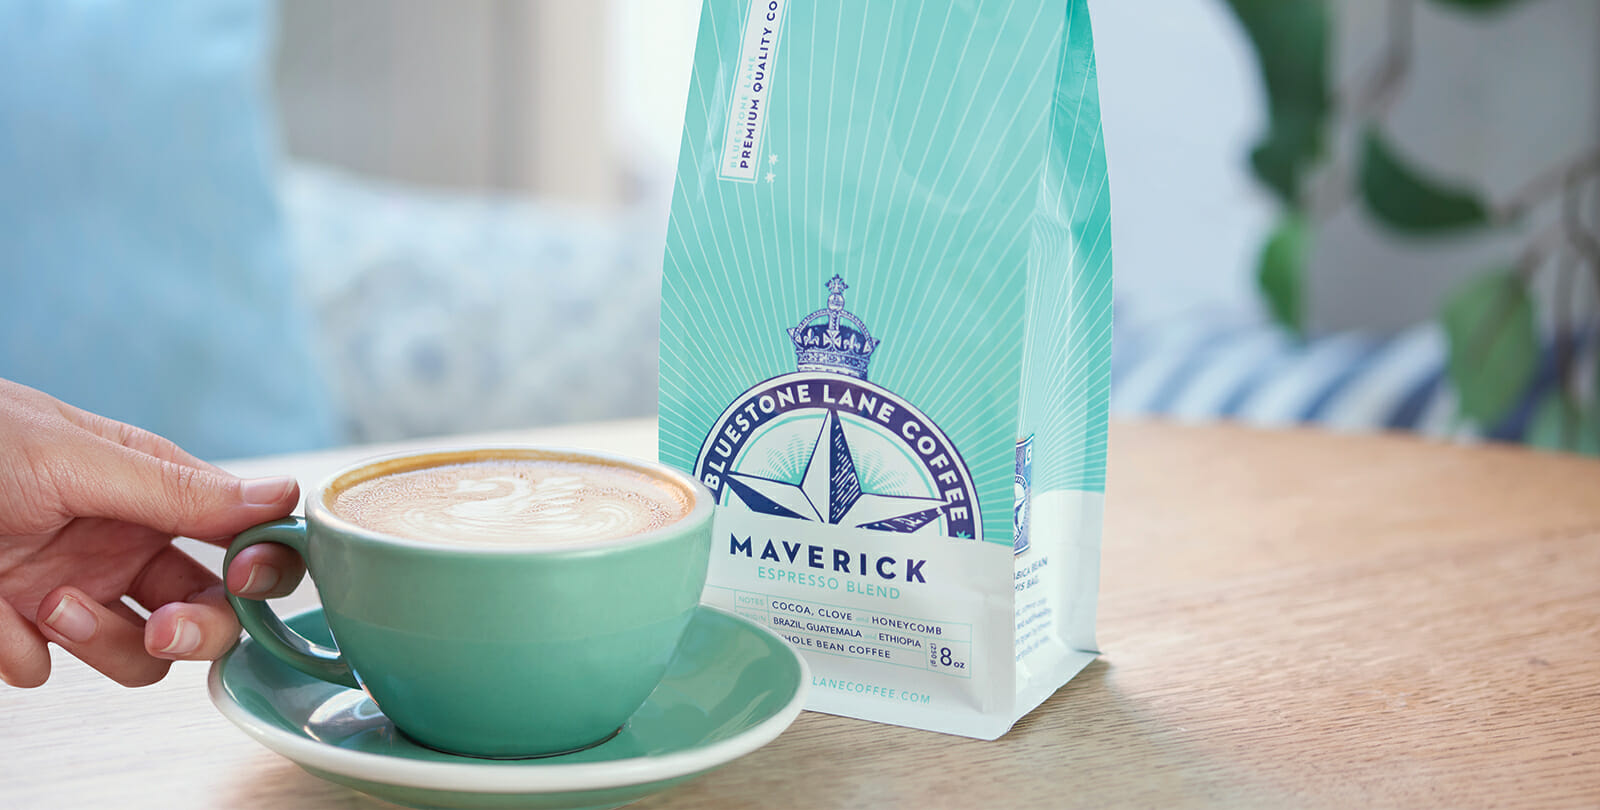 bag of Maverick coffee on table next to cup of flat white, hand reaching for cup